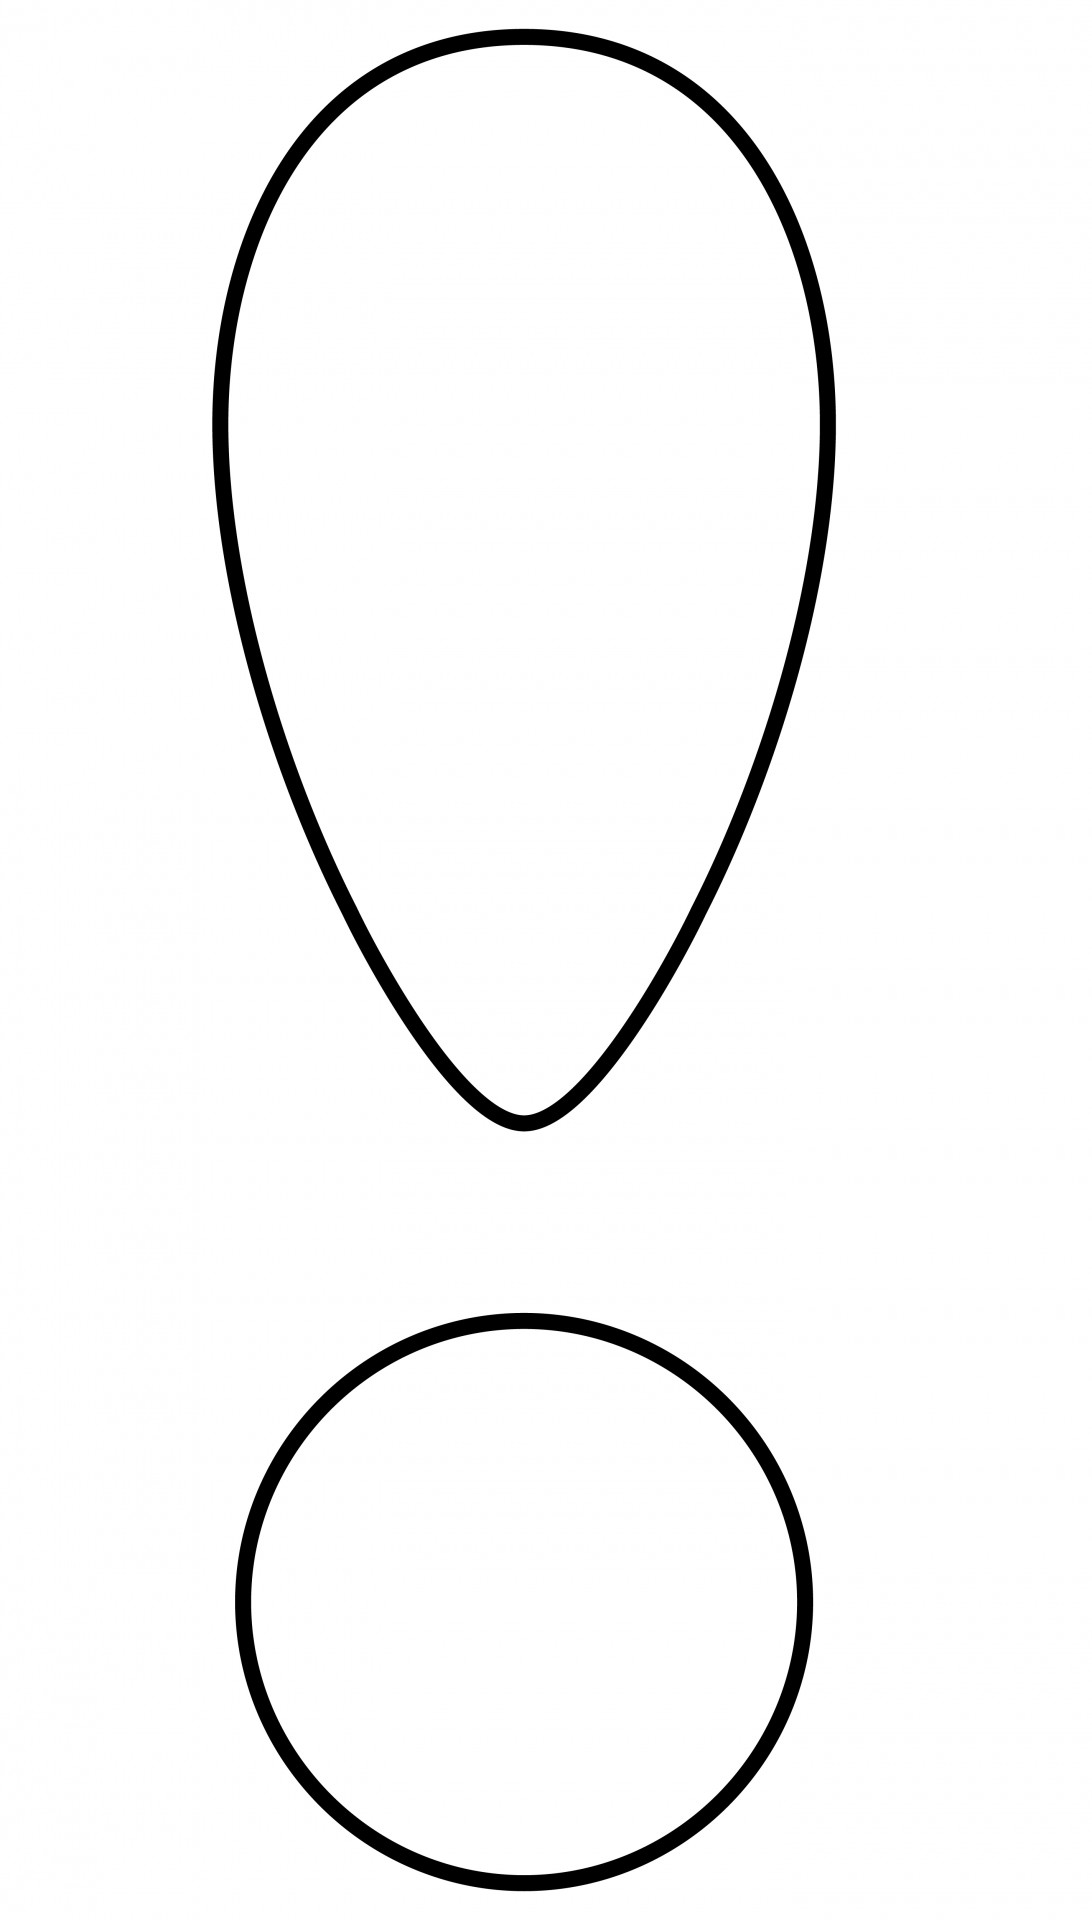 Exclamation Mark Outline Free Stock Photo